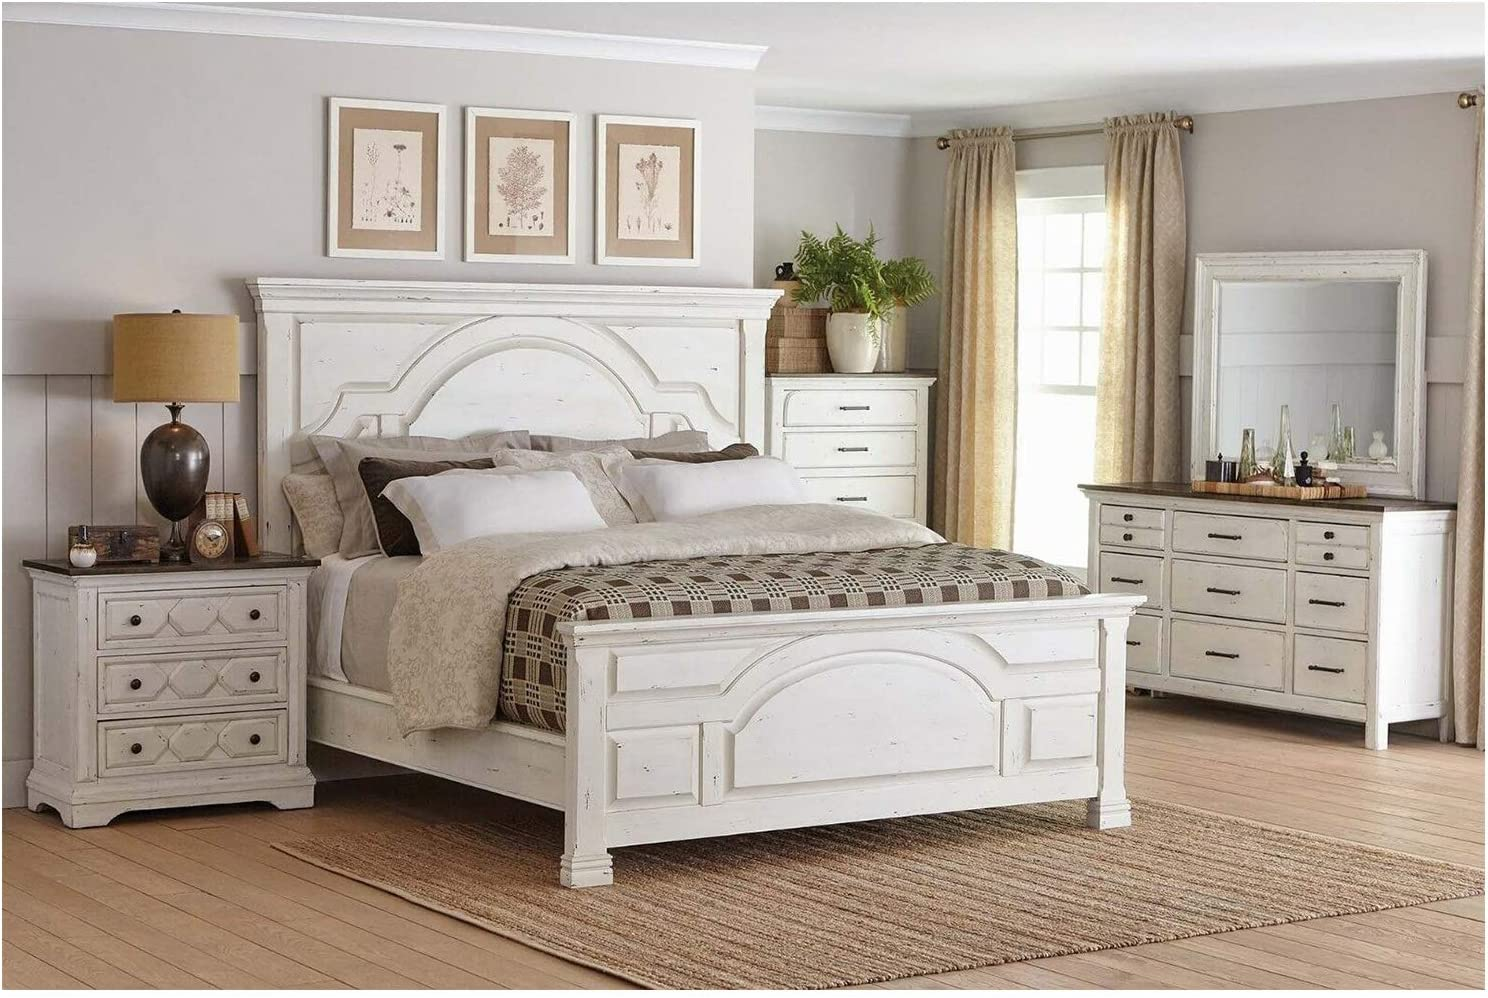 Thaweesuk Shop New 4 Piece Antique White Country Style Rustic Farmhouse Full King Size Bedroom Set Furniture Bed Nightstand Dresser Mirror Department Hardwood Solid Pine Wood